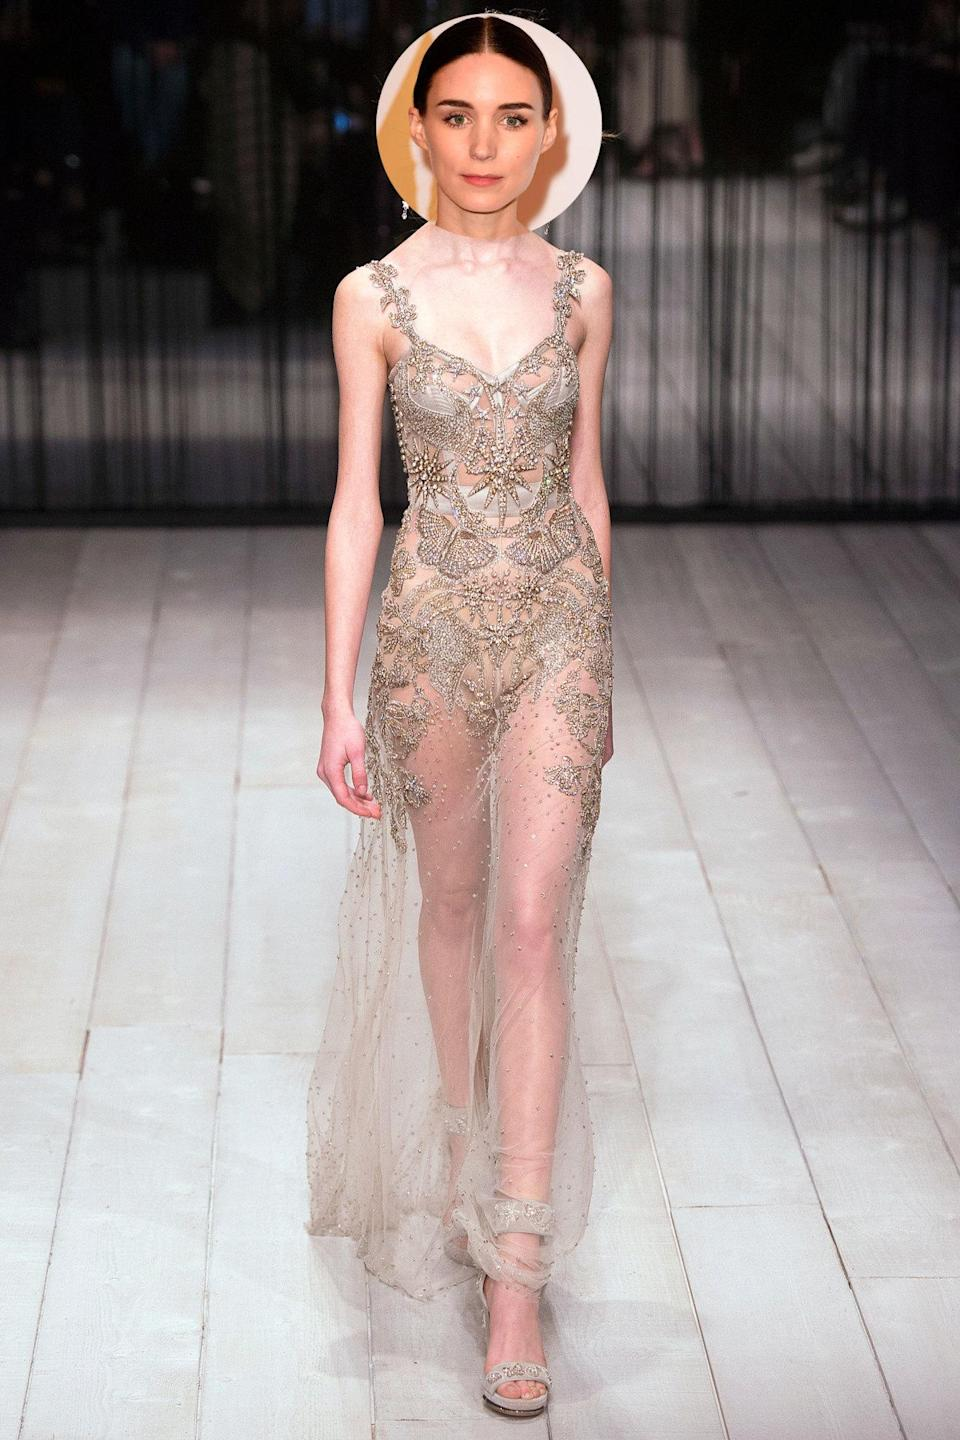 <p>Mara may have a reputation as a risk-taking red carpet bad girl, but in recent months, we've seen a softer side of the <i>Carol</i> actress. We wouldn't be surprised to see her on the red carpet in this sheer number from Alexander McQueen.</p>